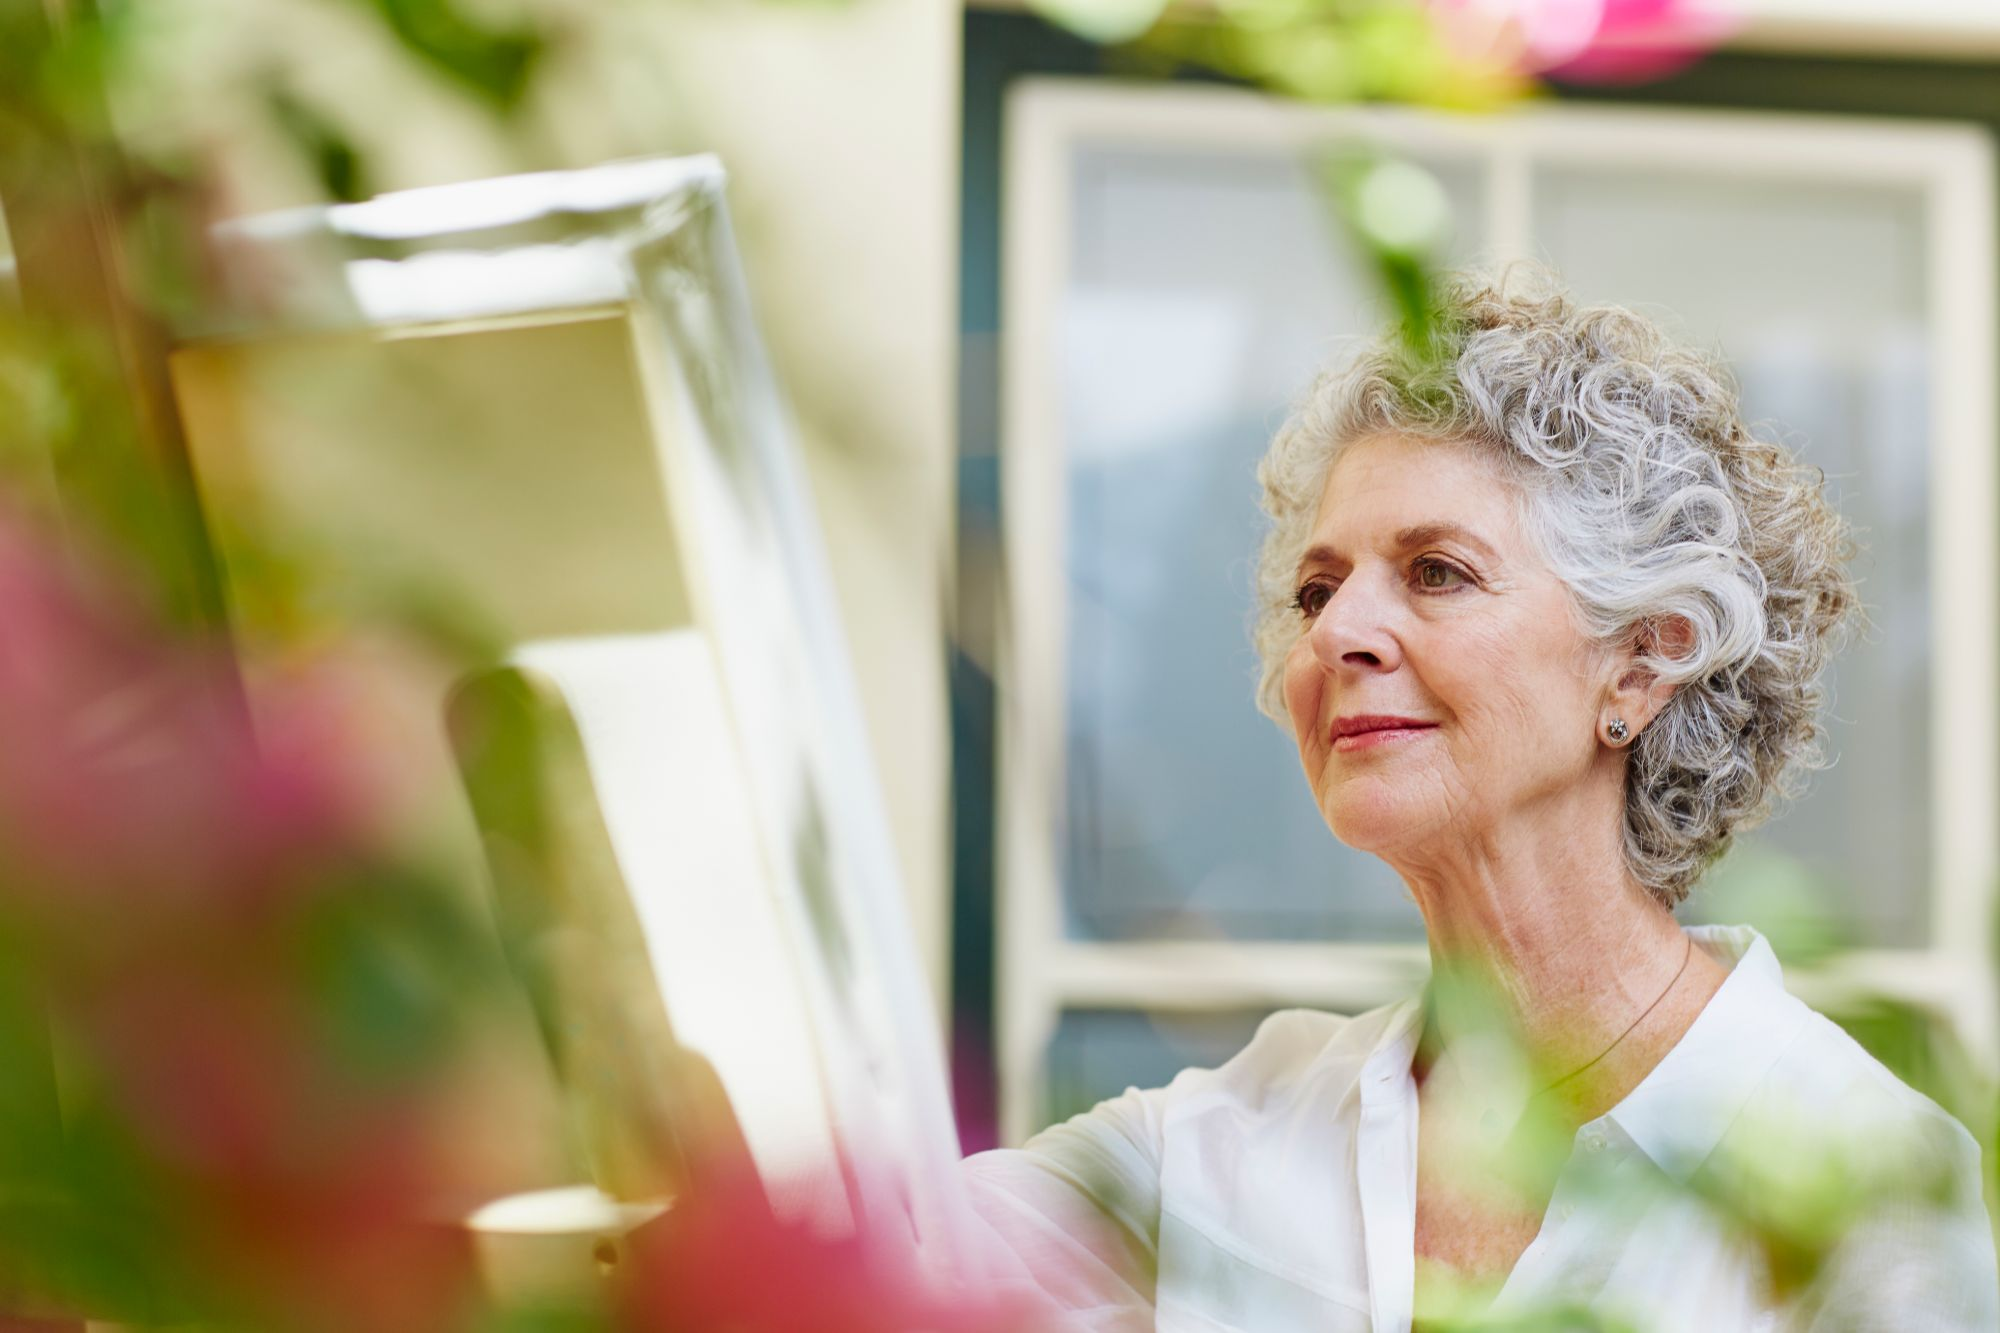 Senior living resident paints at an easel in the outdoors